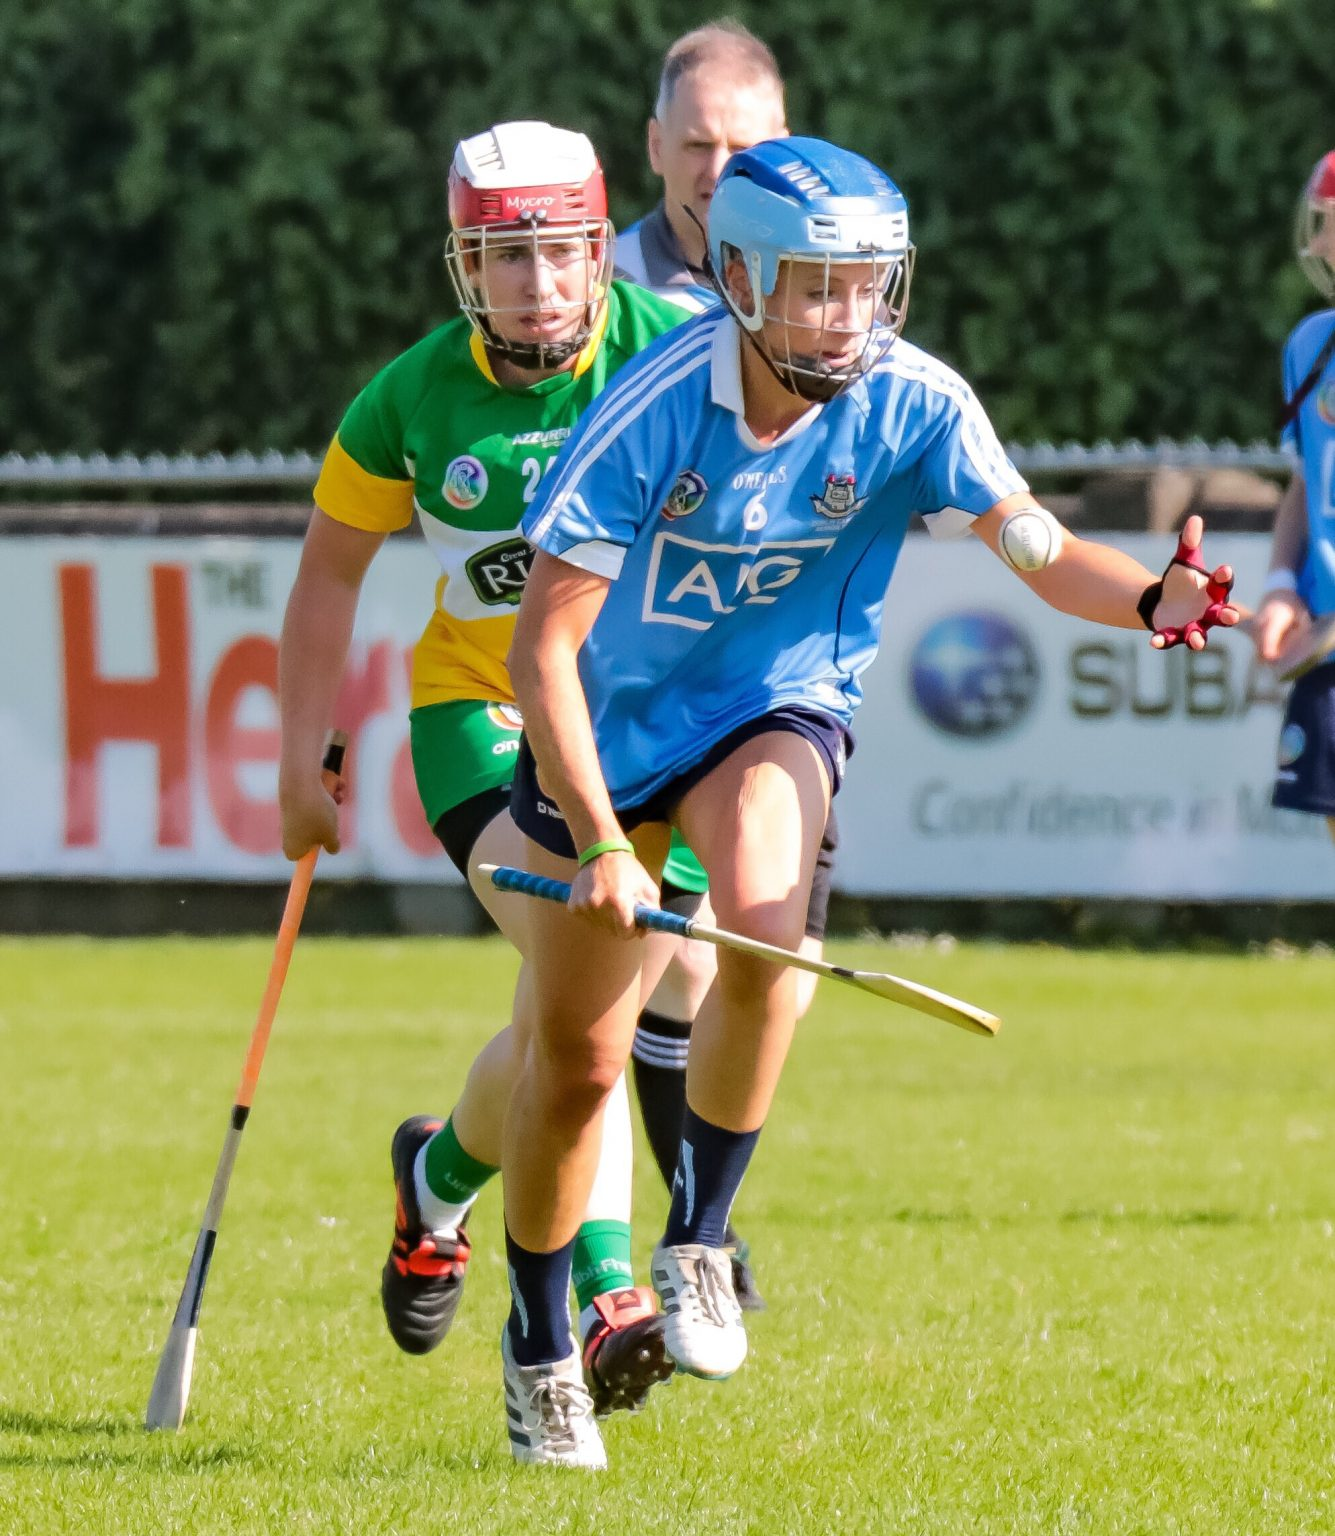 Dublin Camogie Player In Sky Blue Jersey and hurl in right hand breaks away with the ball during Dublin's Championship thriller win